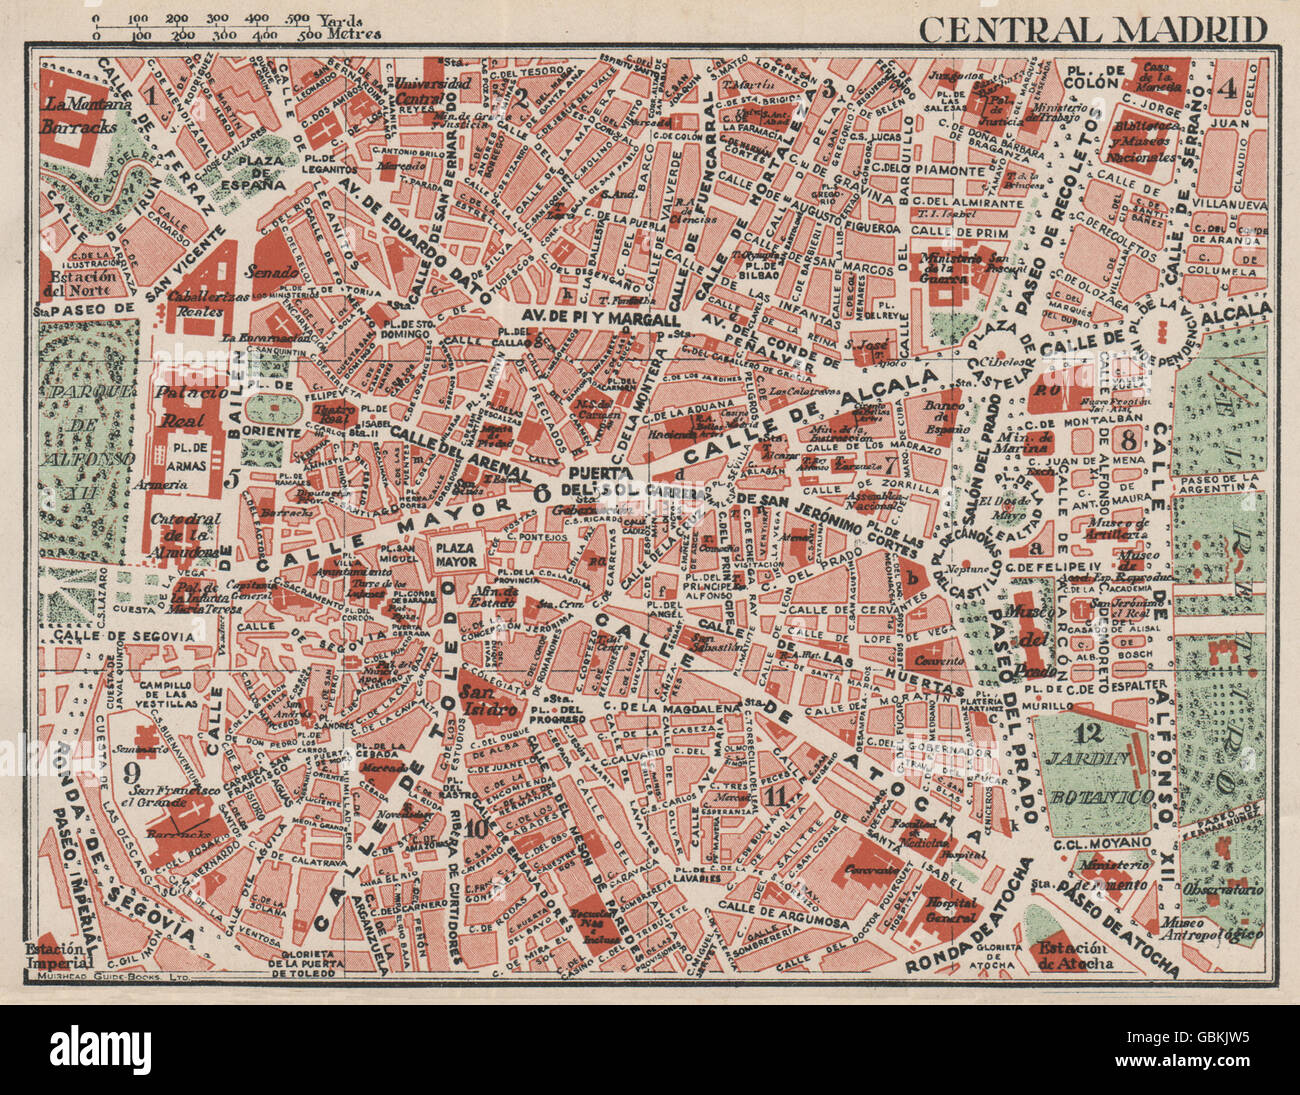 Map Of Central Spain.Central Madrid Vintage Town City Map Plan Spain 1930 Stock Photo